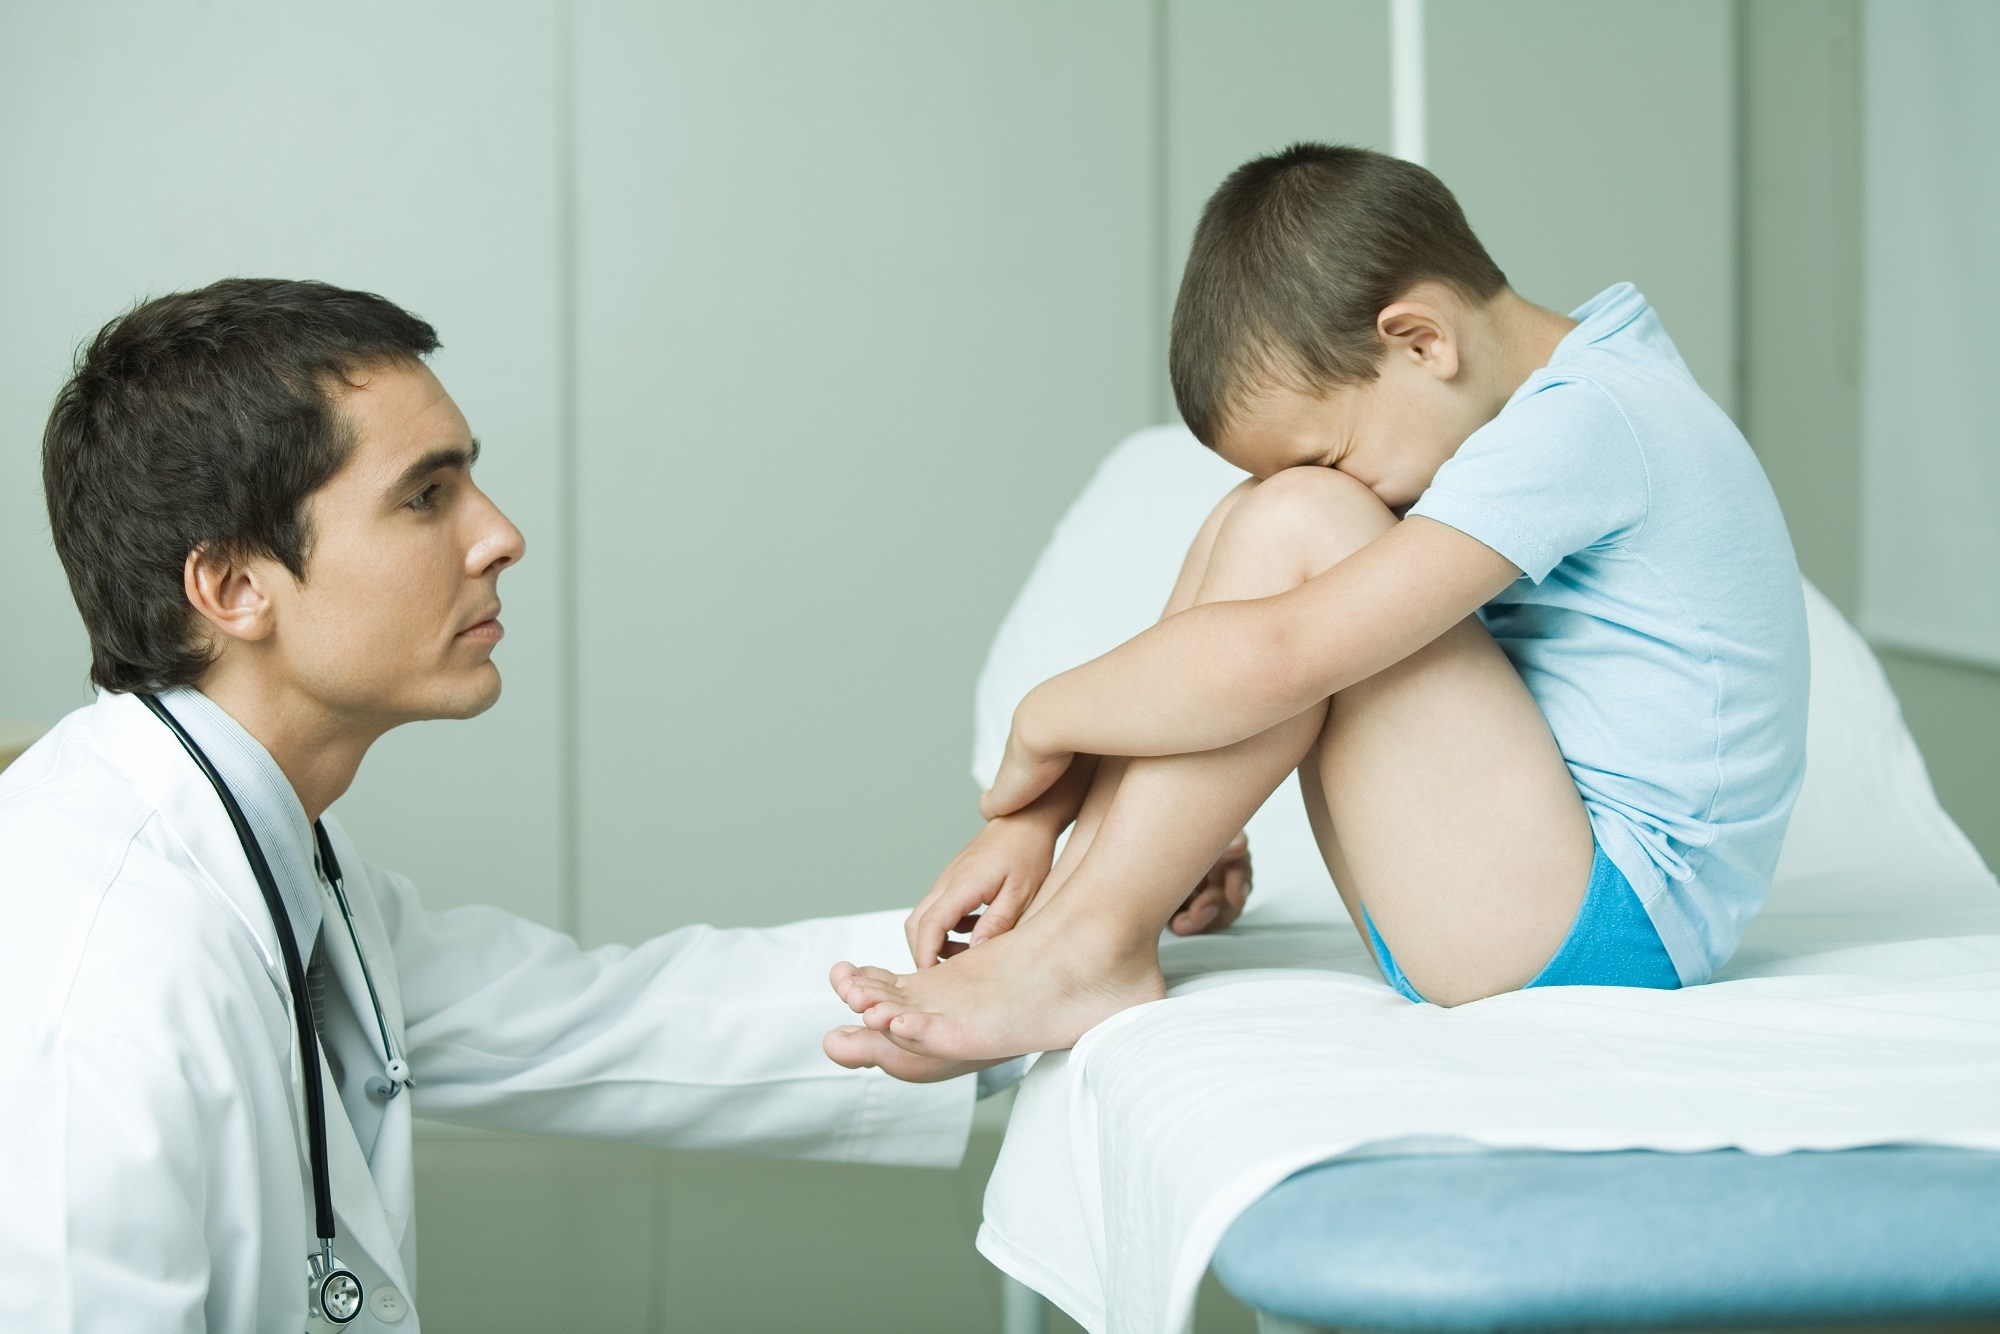 50 Percent of Children Aged 2 to 5 Years Fear Doctor Visits